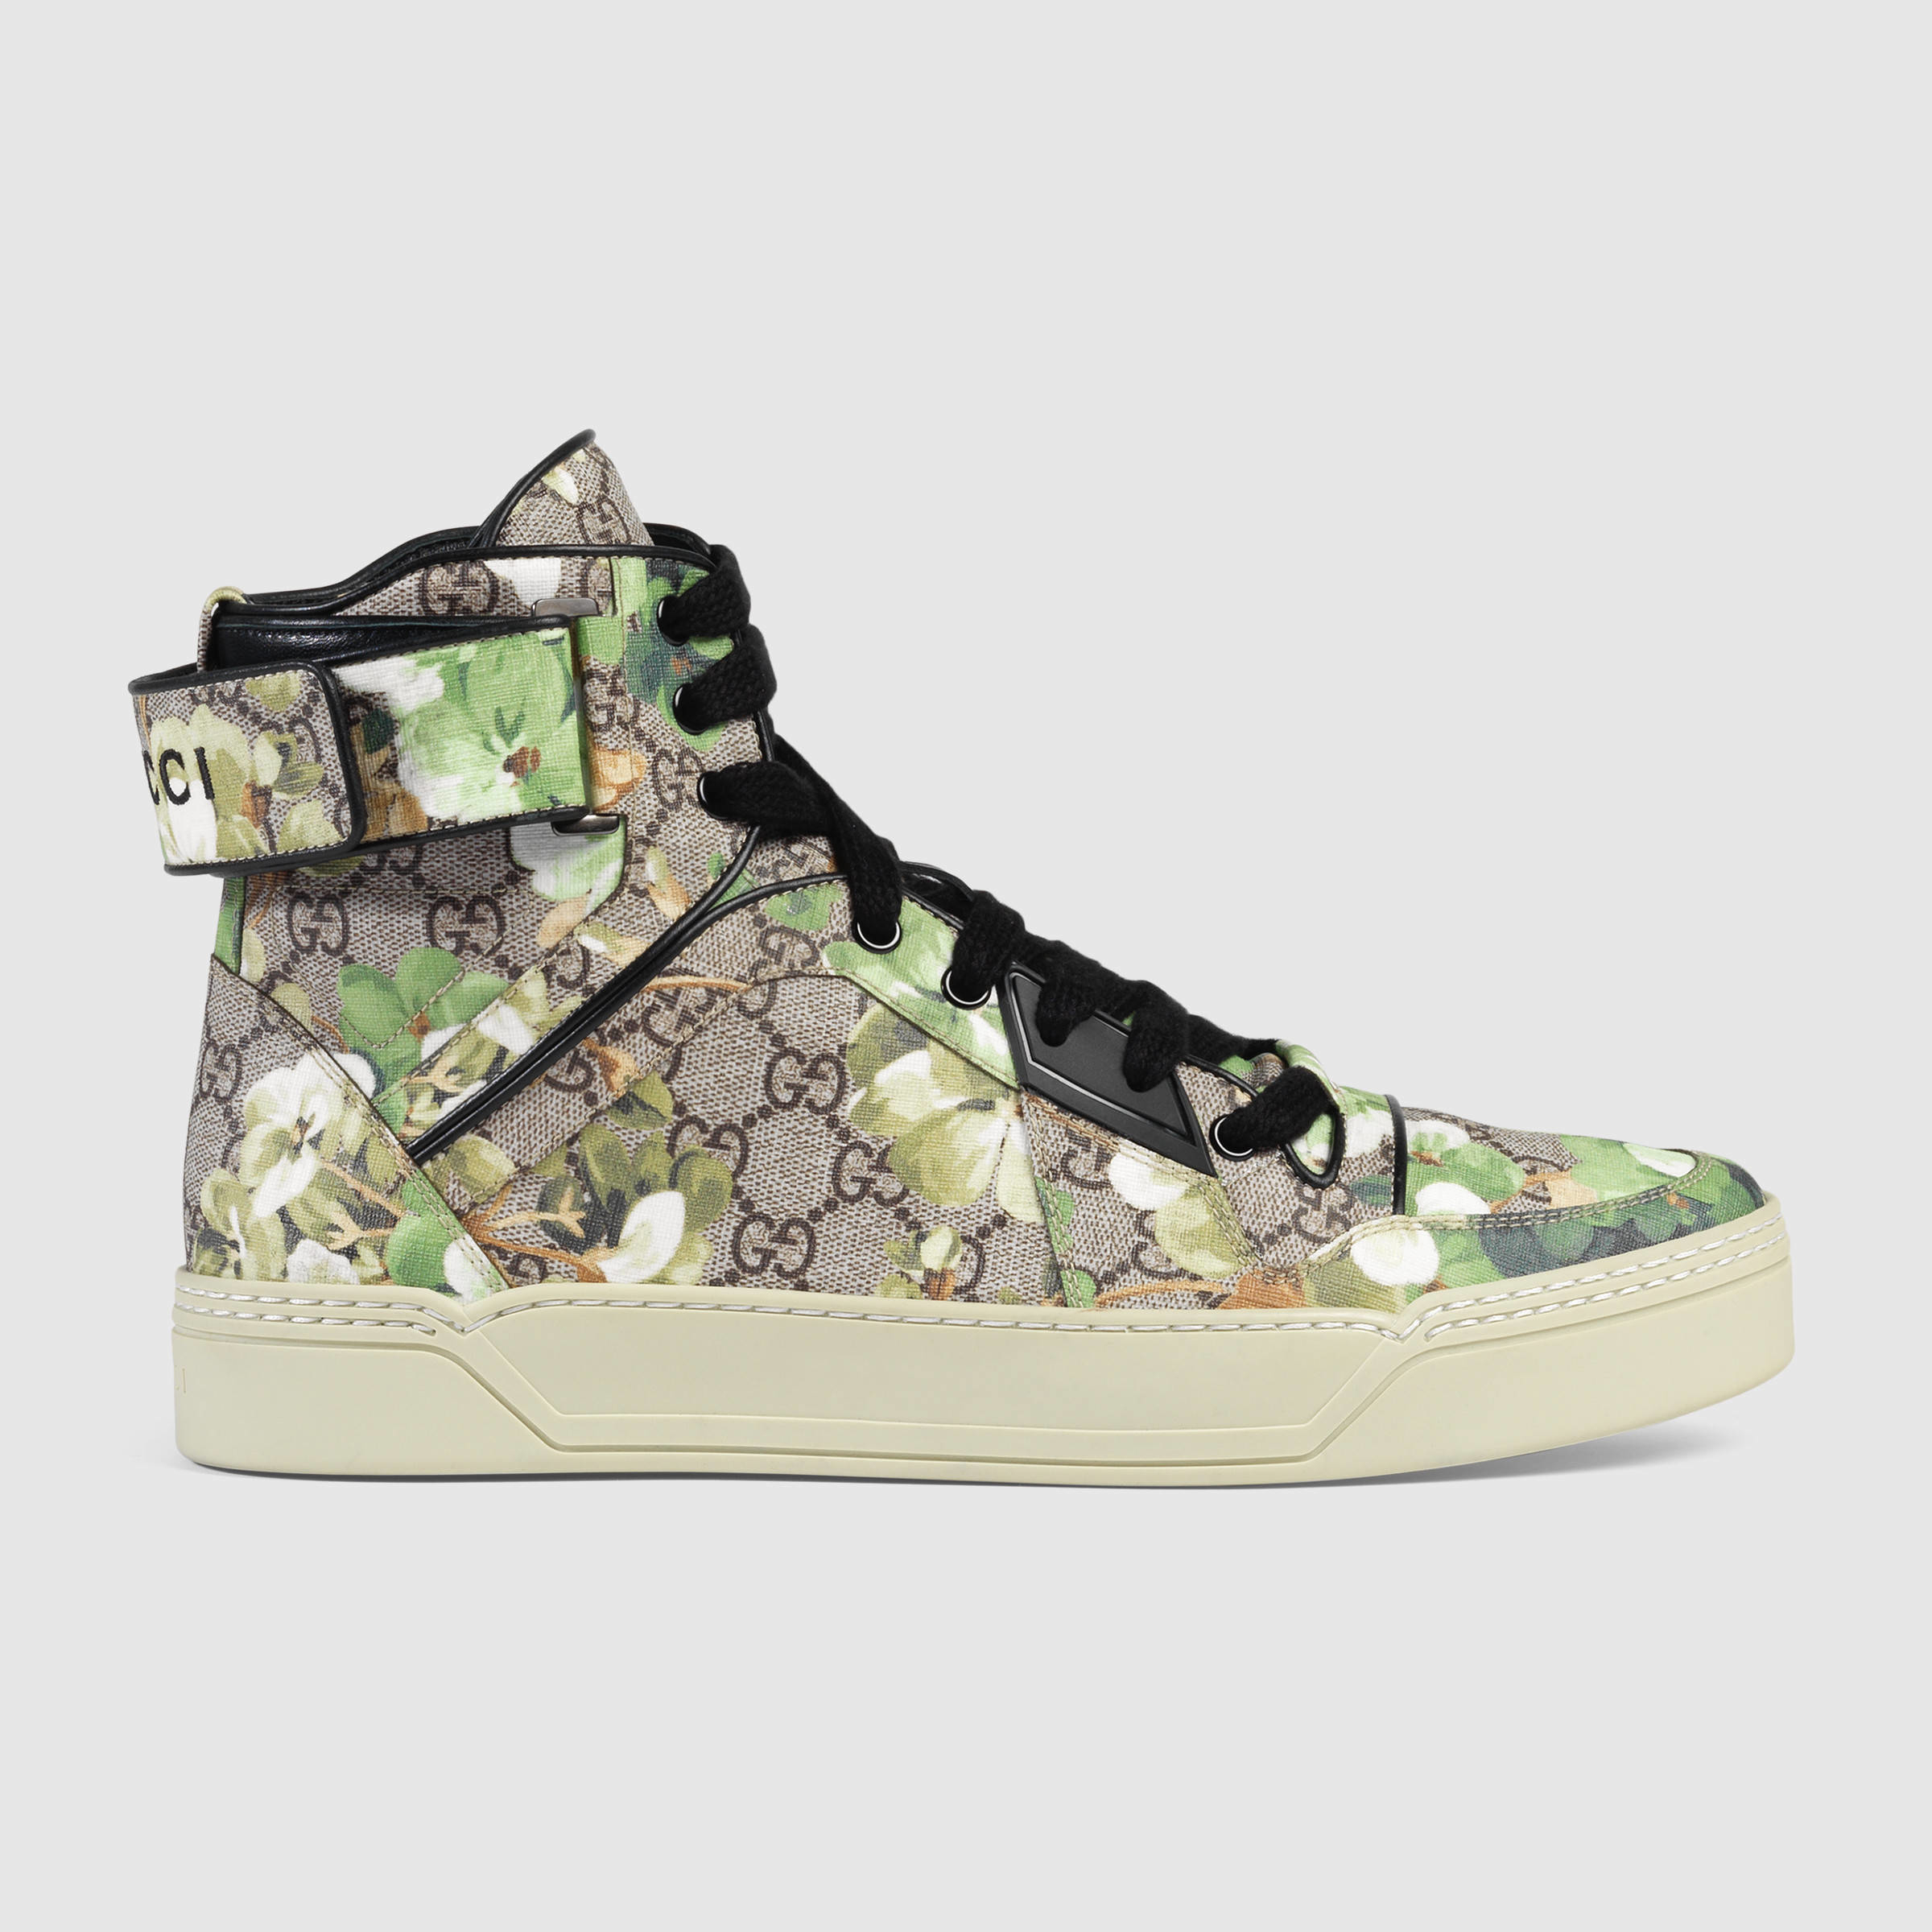 717056cf694 Lyst - Gucci Blooms Print High-top Sneaker in Green for Men